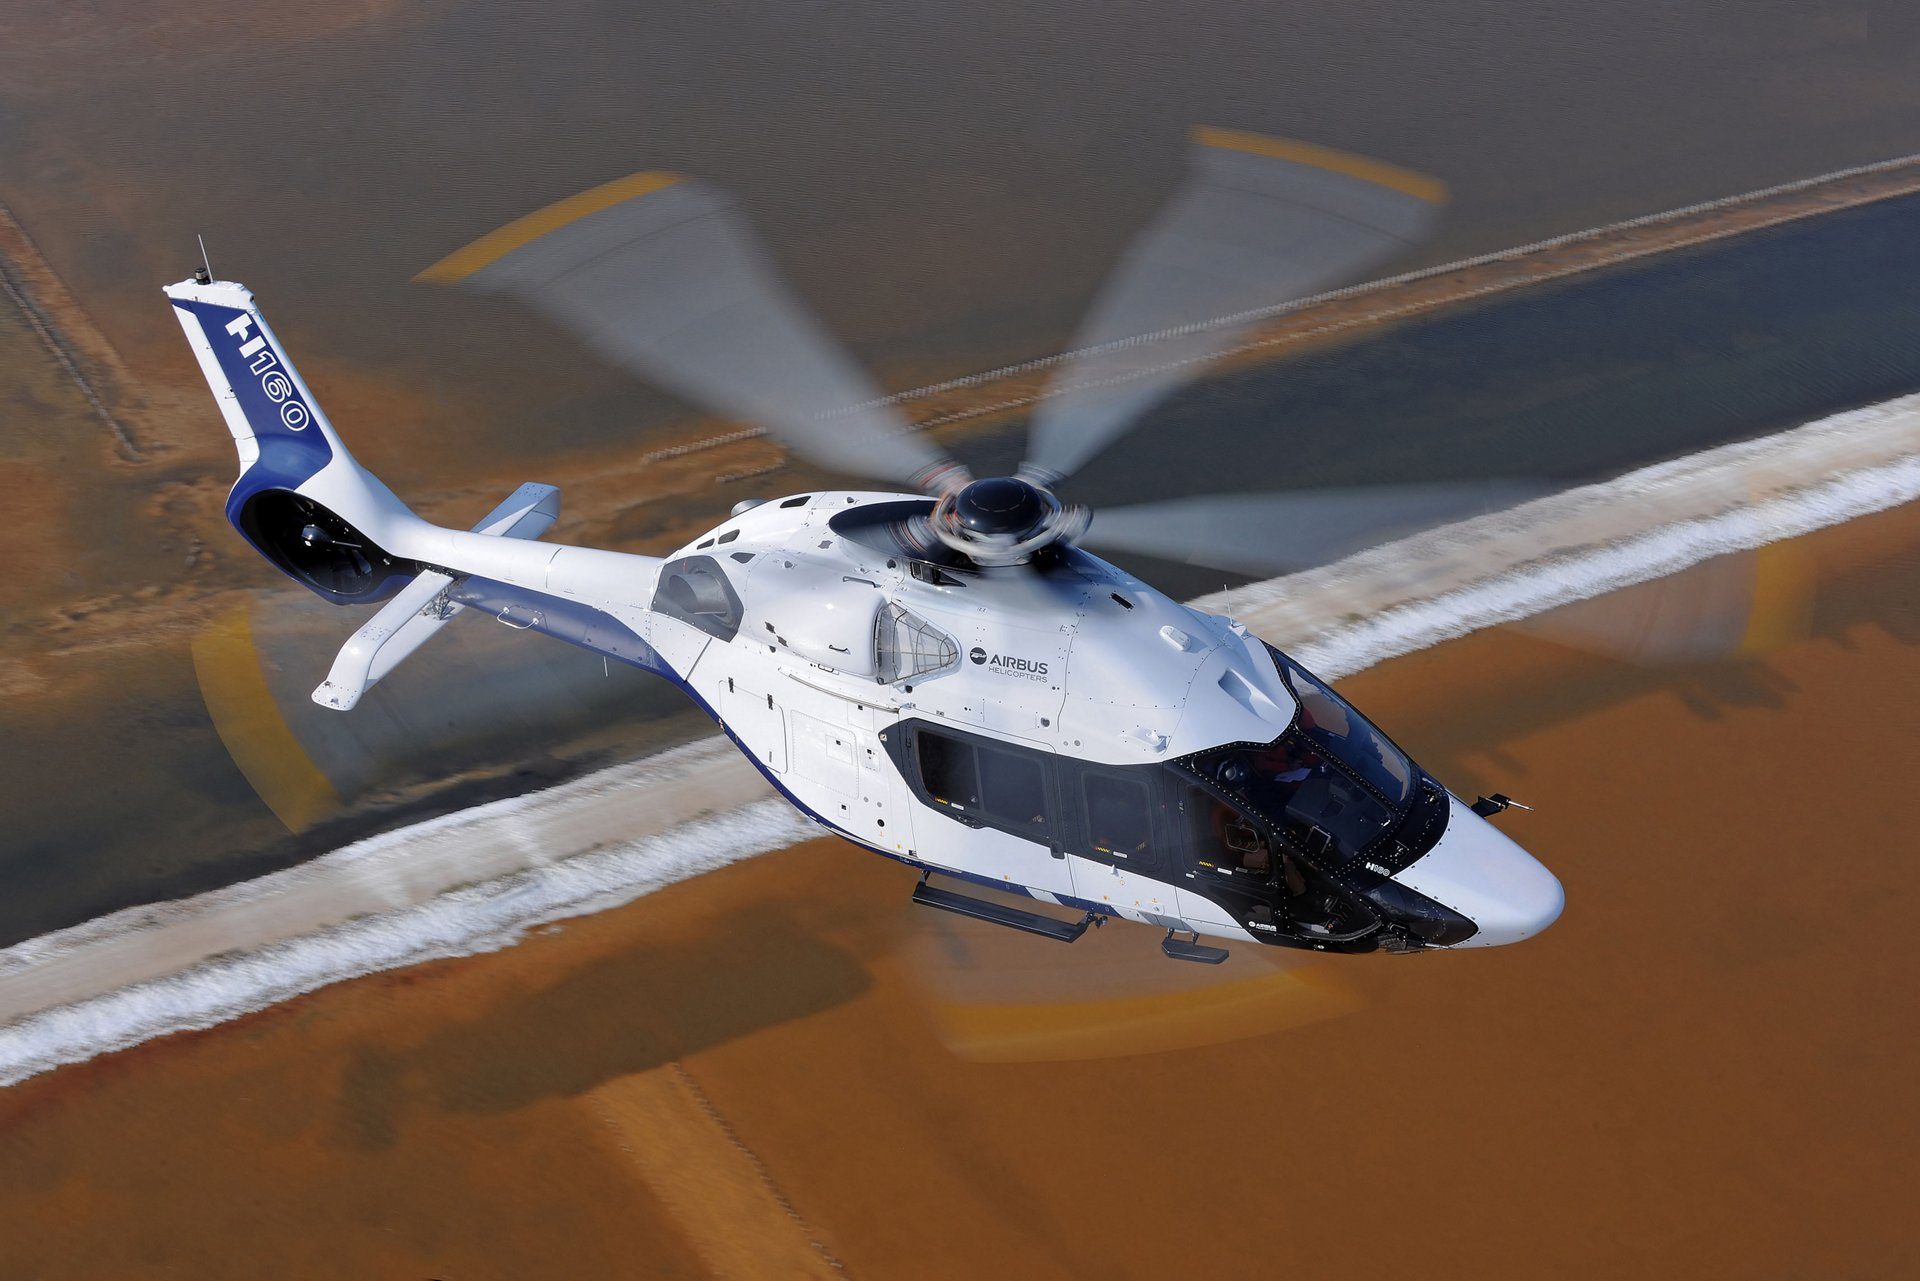 Learn more about Airbus Helicopters